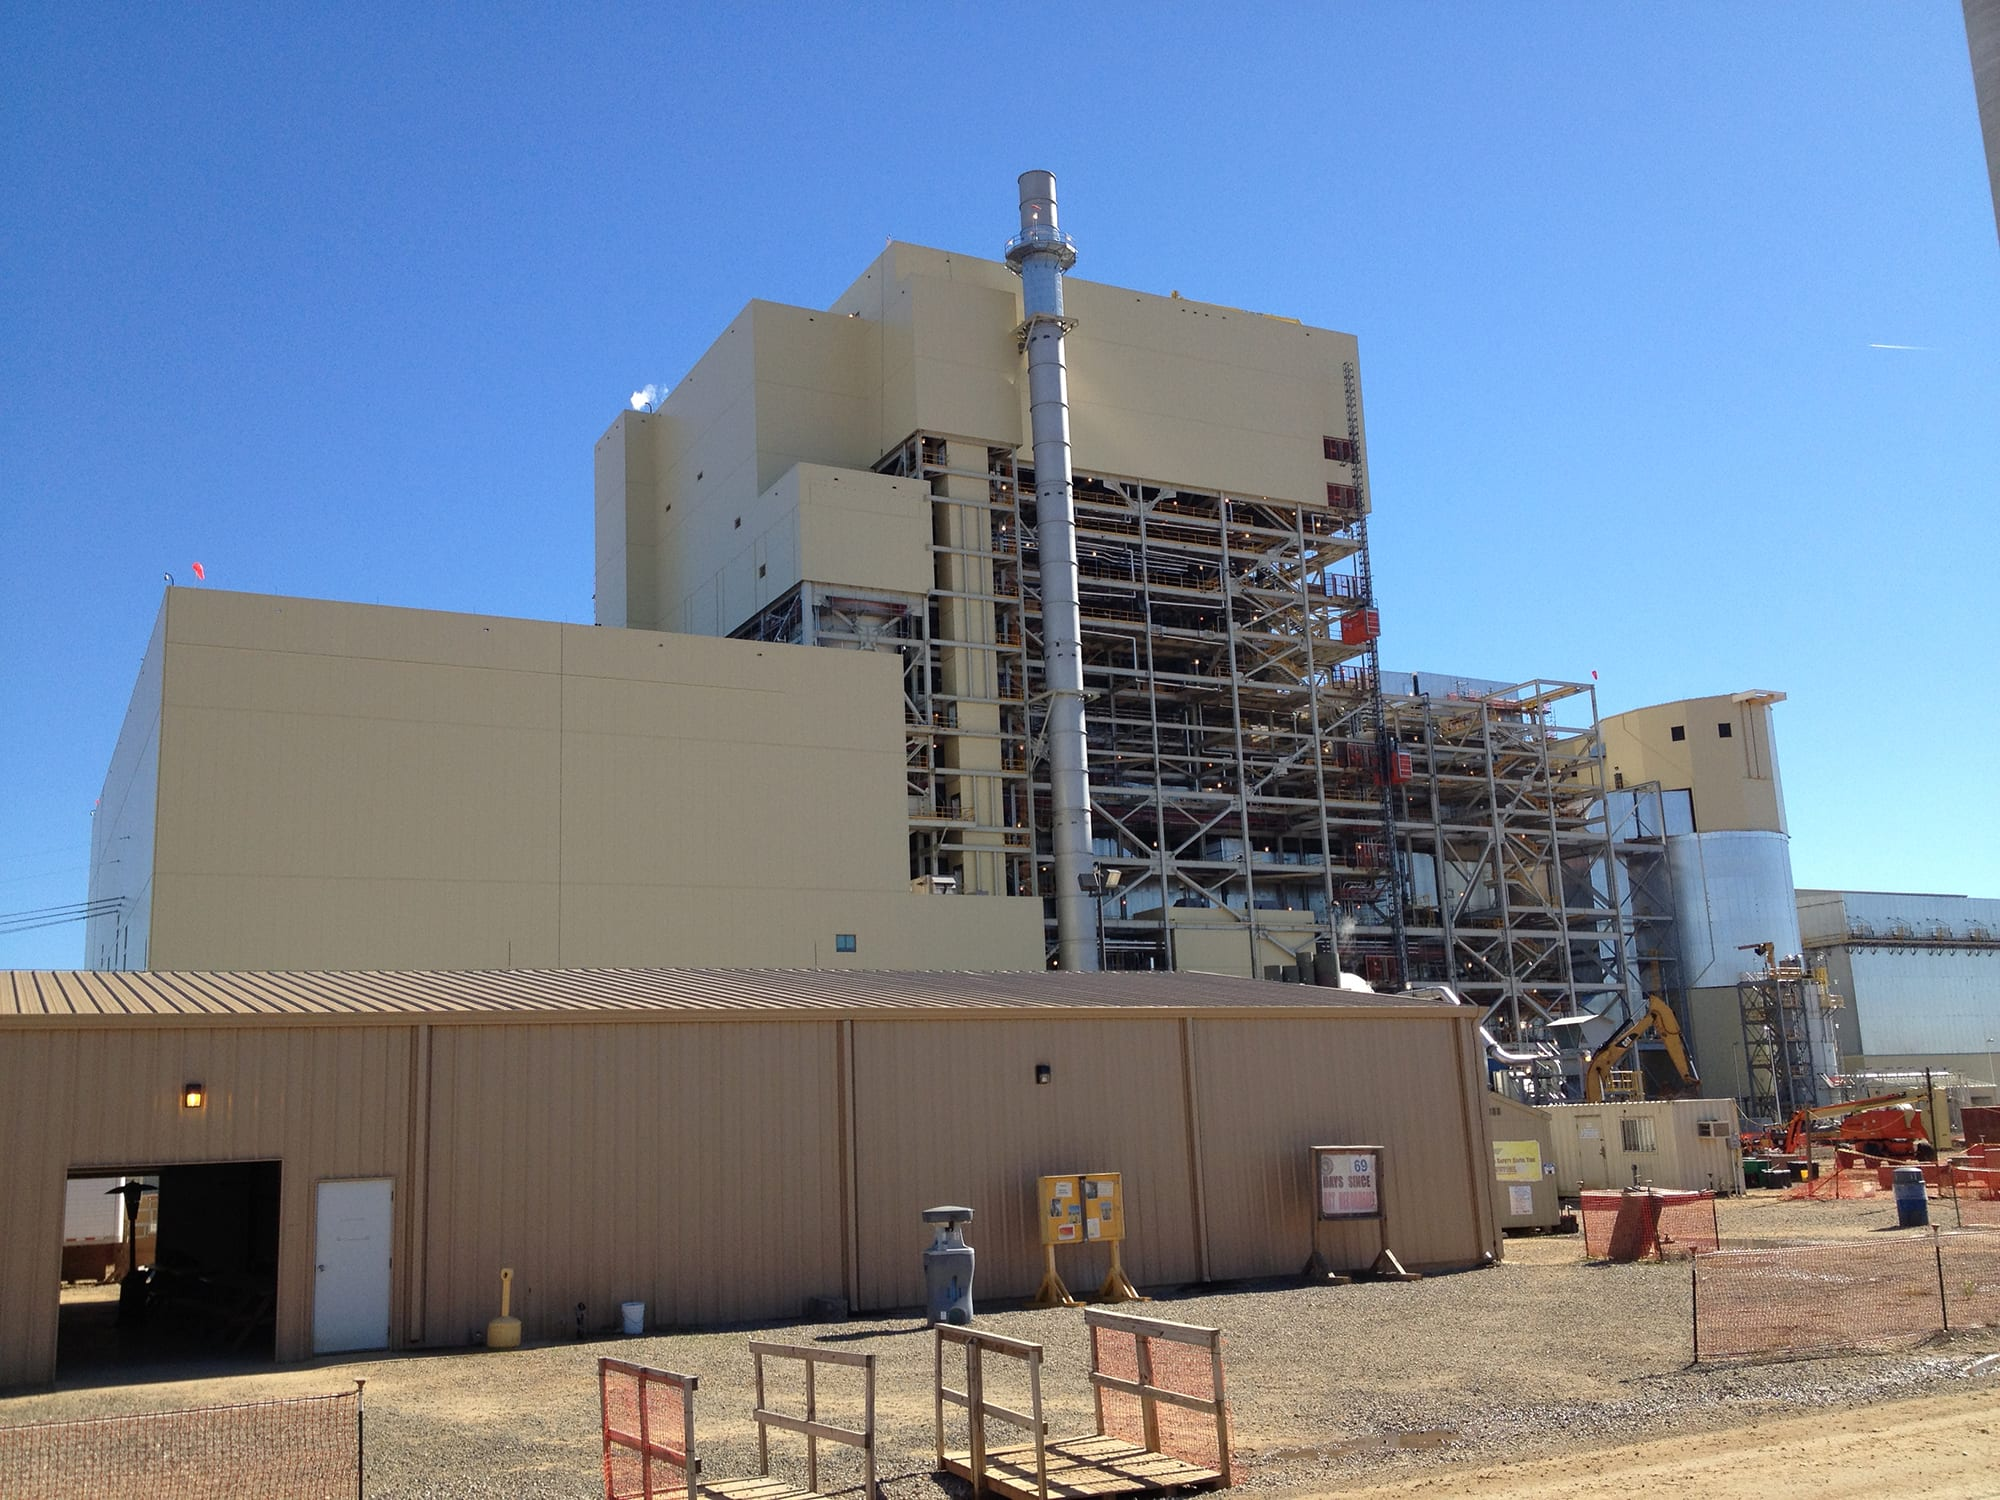 csm industrial project at turk power plant